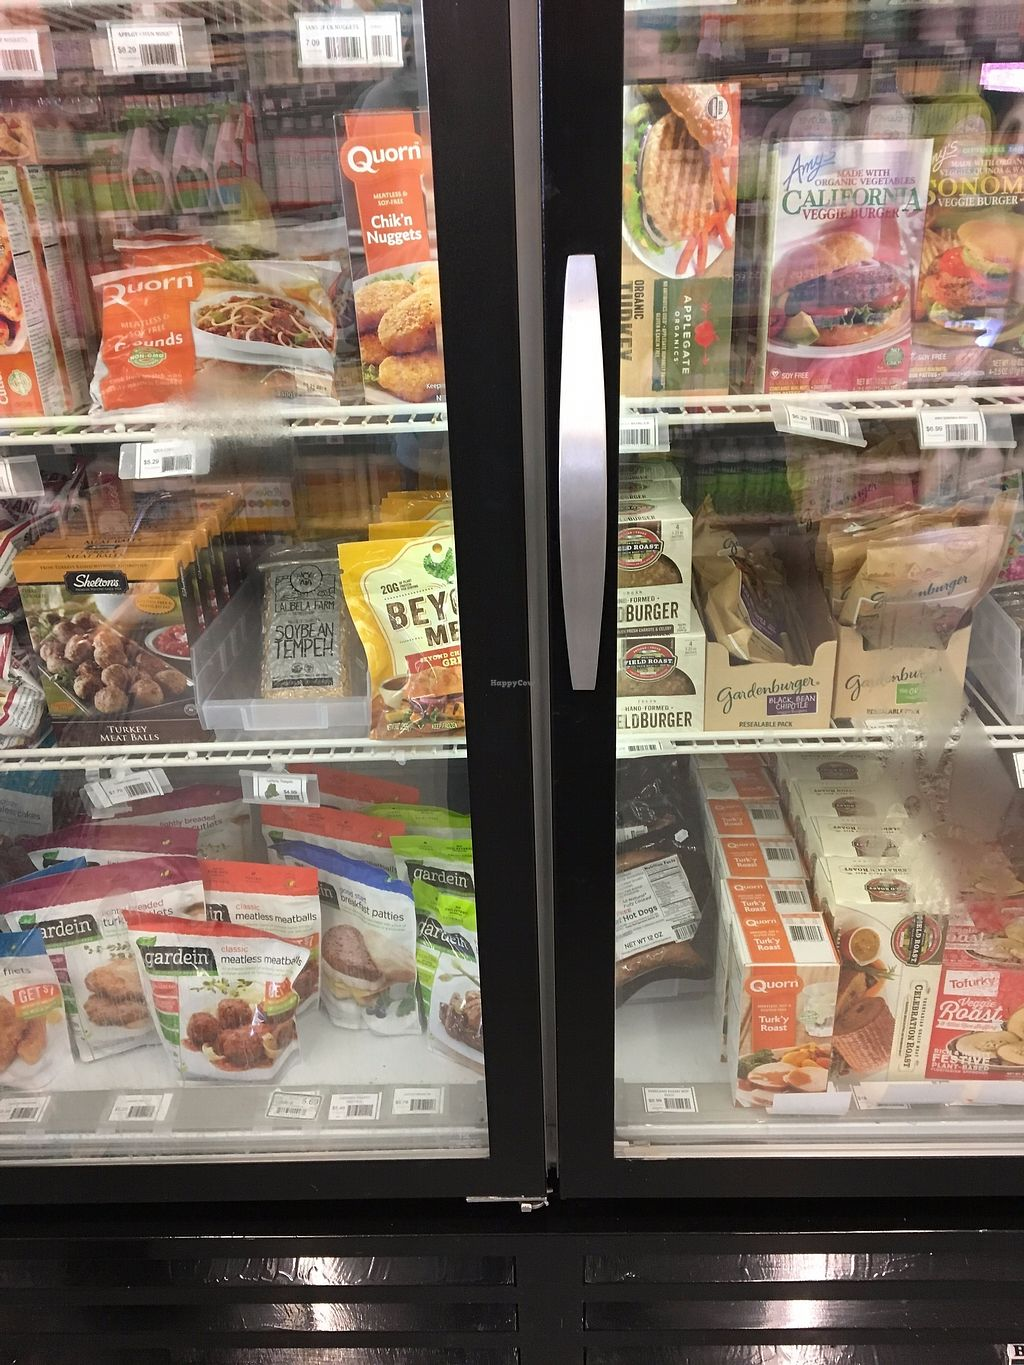 """Photo of Tiller and Rye  by <a href=""""/members/profile/sophiefrenchfry"""">sophiefrenchfry</a> <br/>Some of the veg options in the freezer section at Tiller and Rye <br/> November 15, 2017  - <a href='/contact/abuse/image/64978/325952'>Report</a>"""